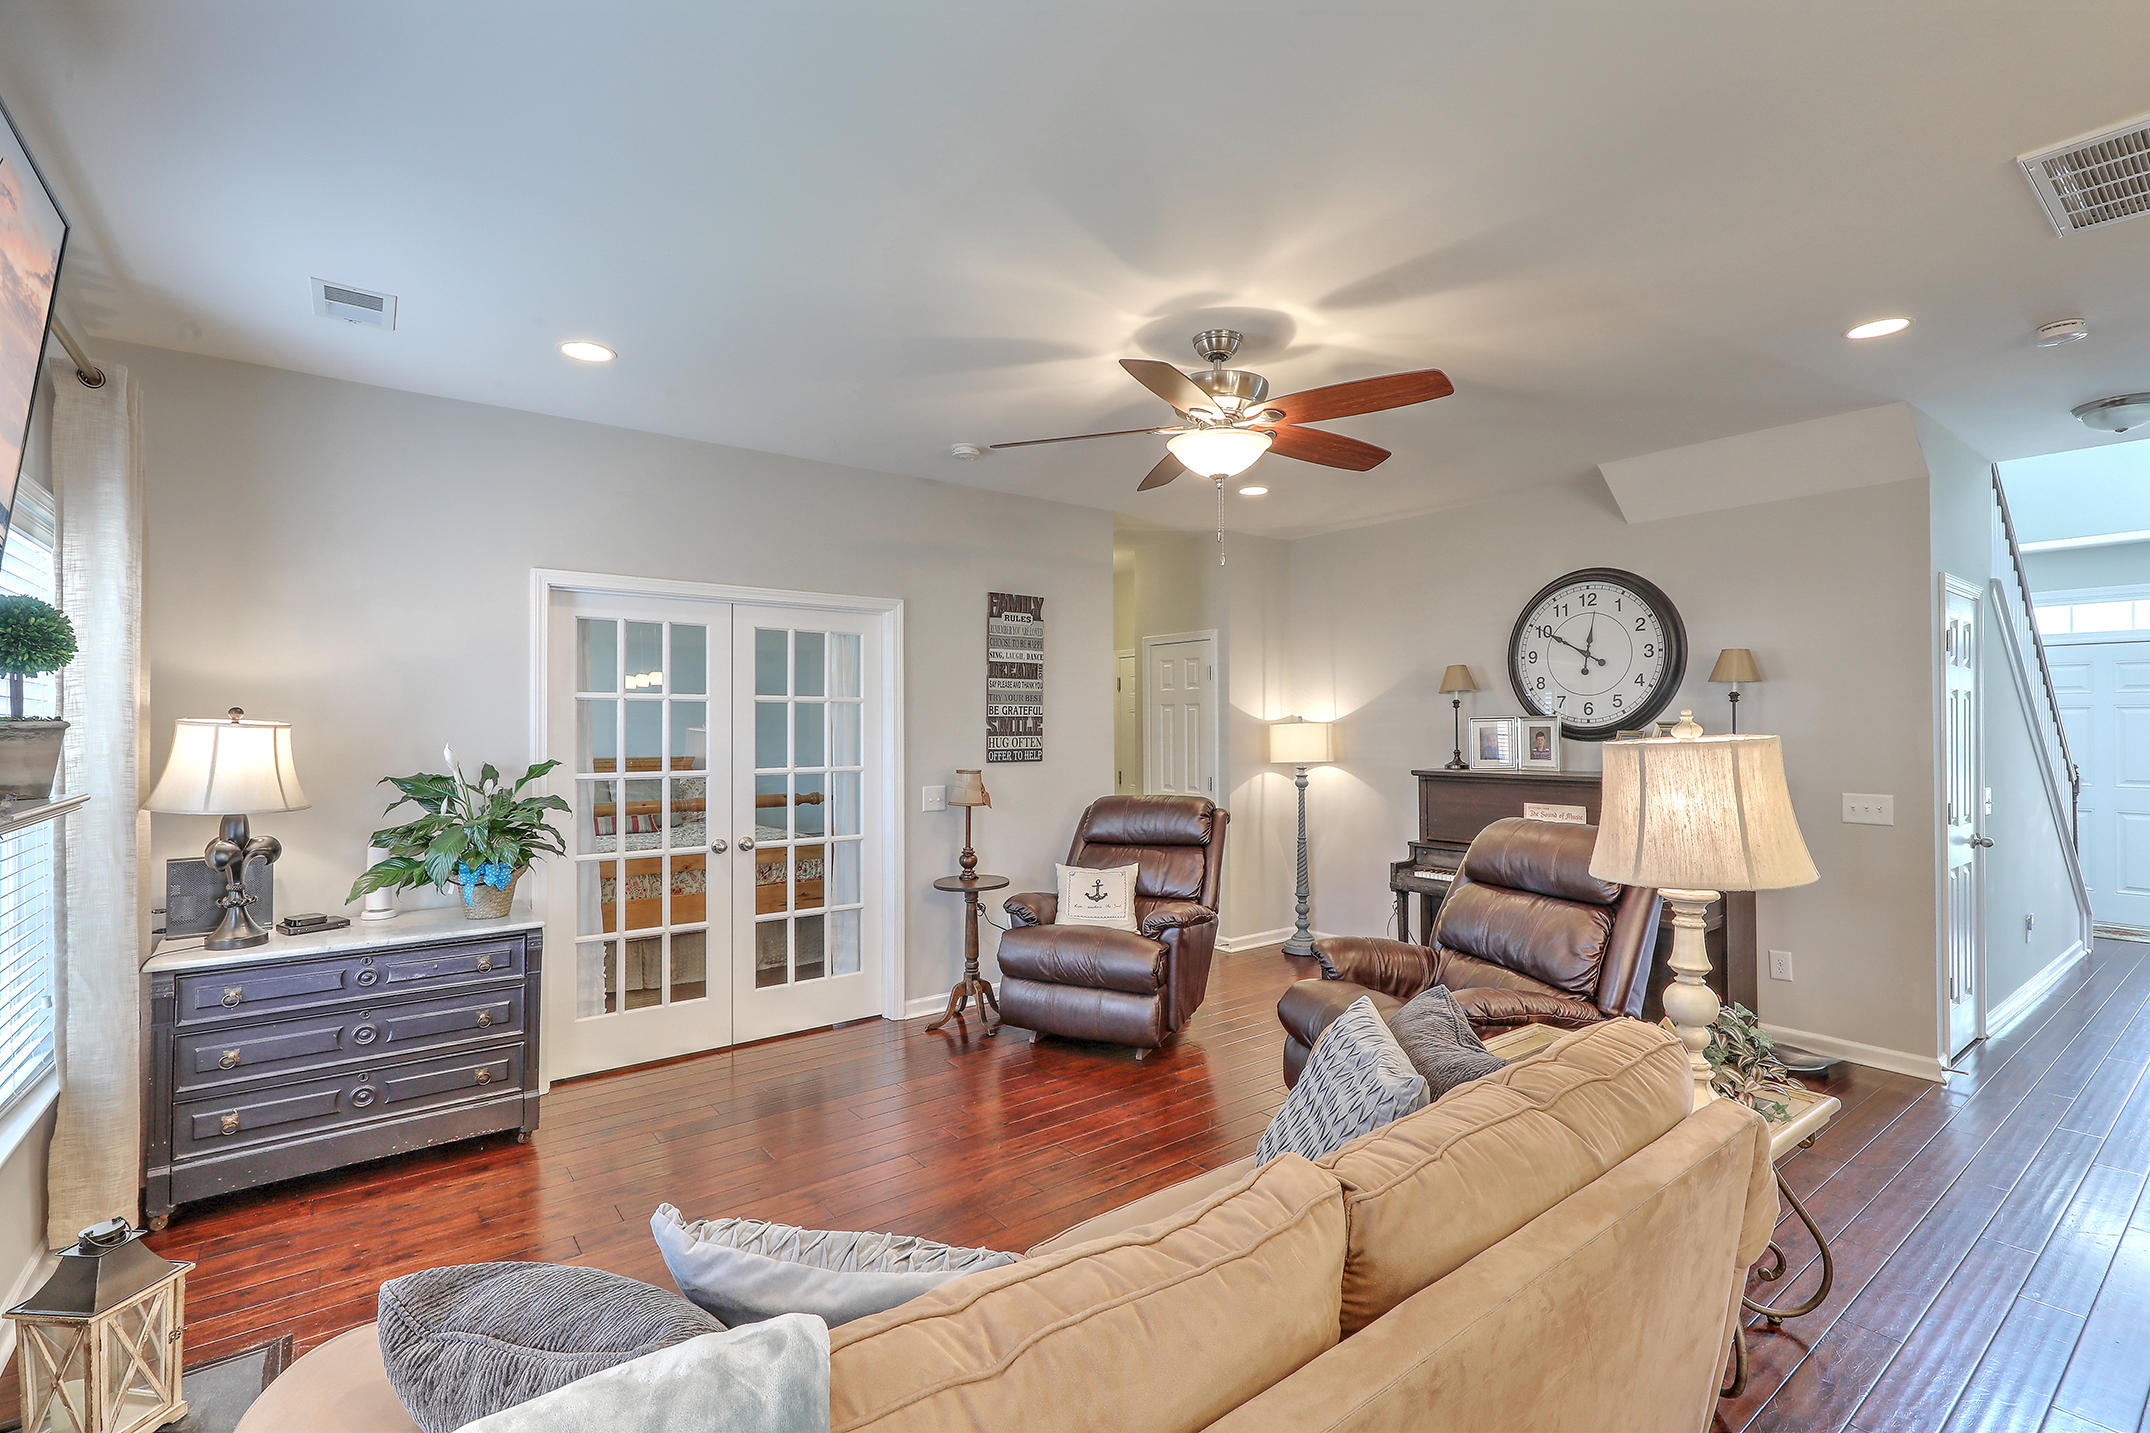 498 Nelliefield Trail Wando, Sc 29492